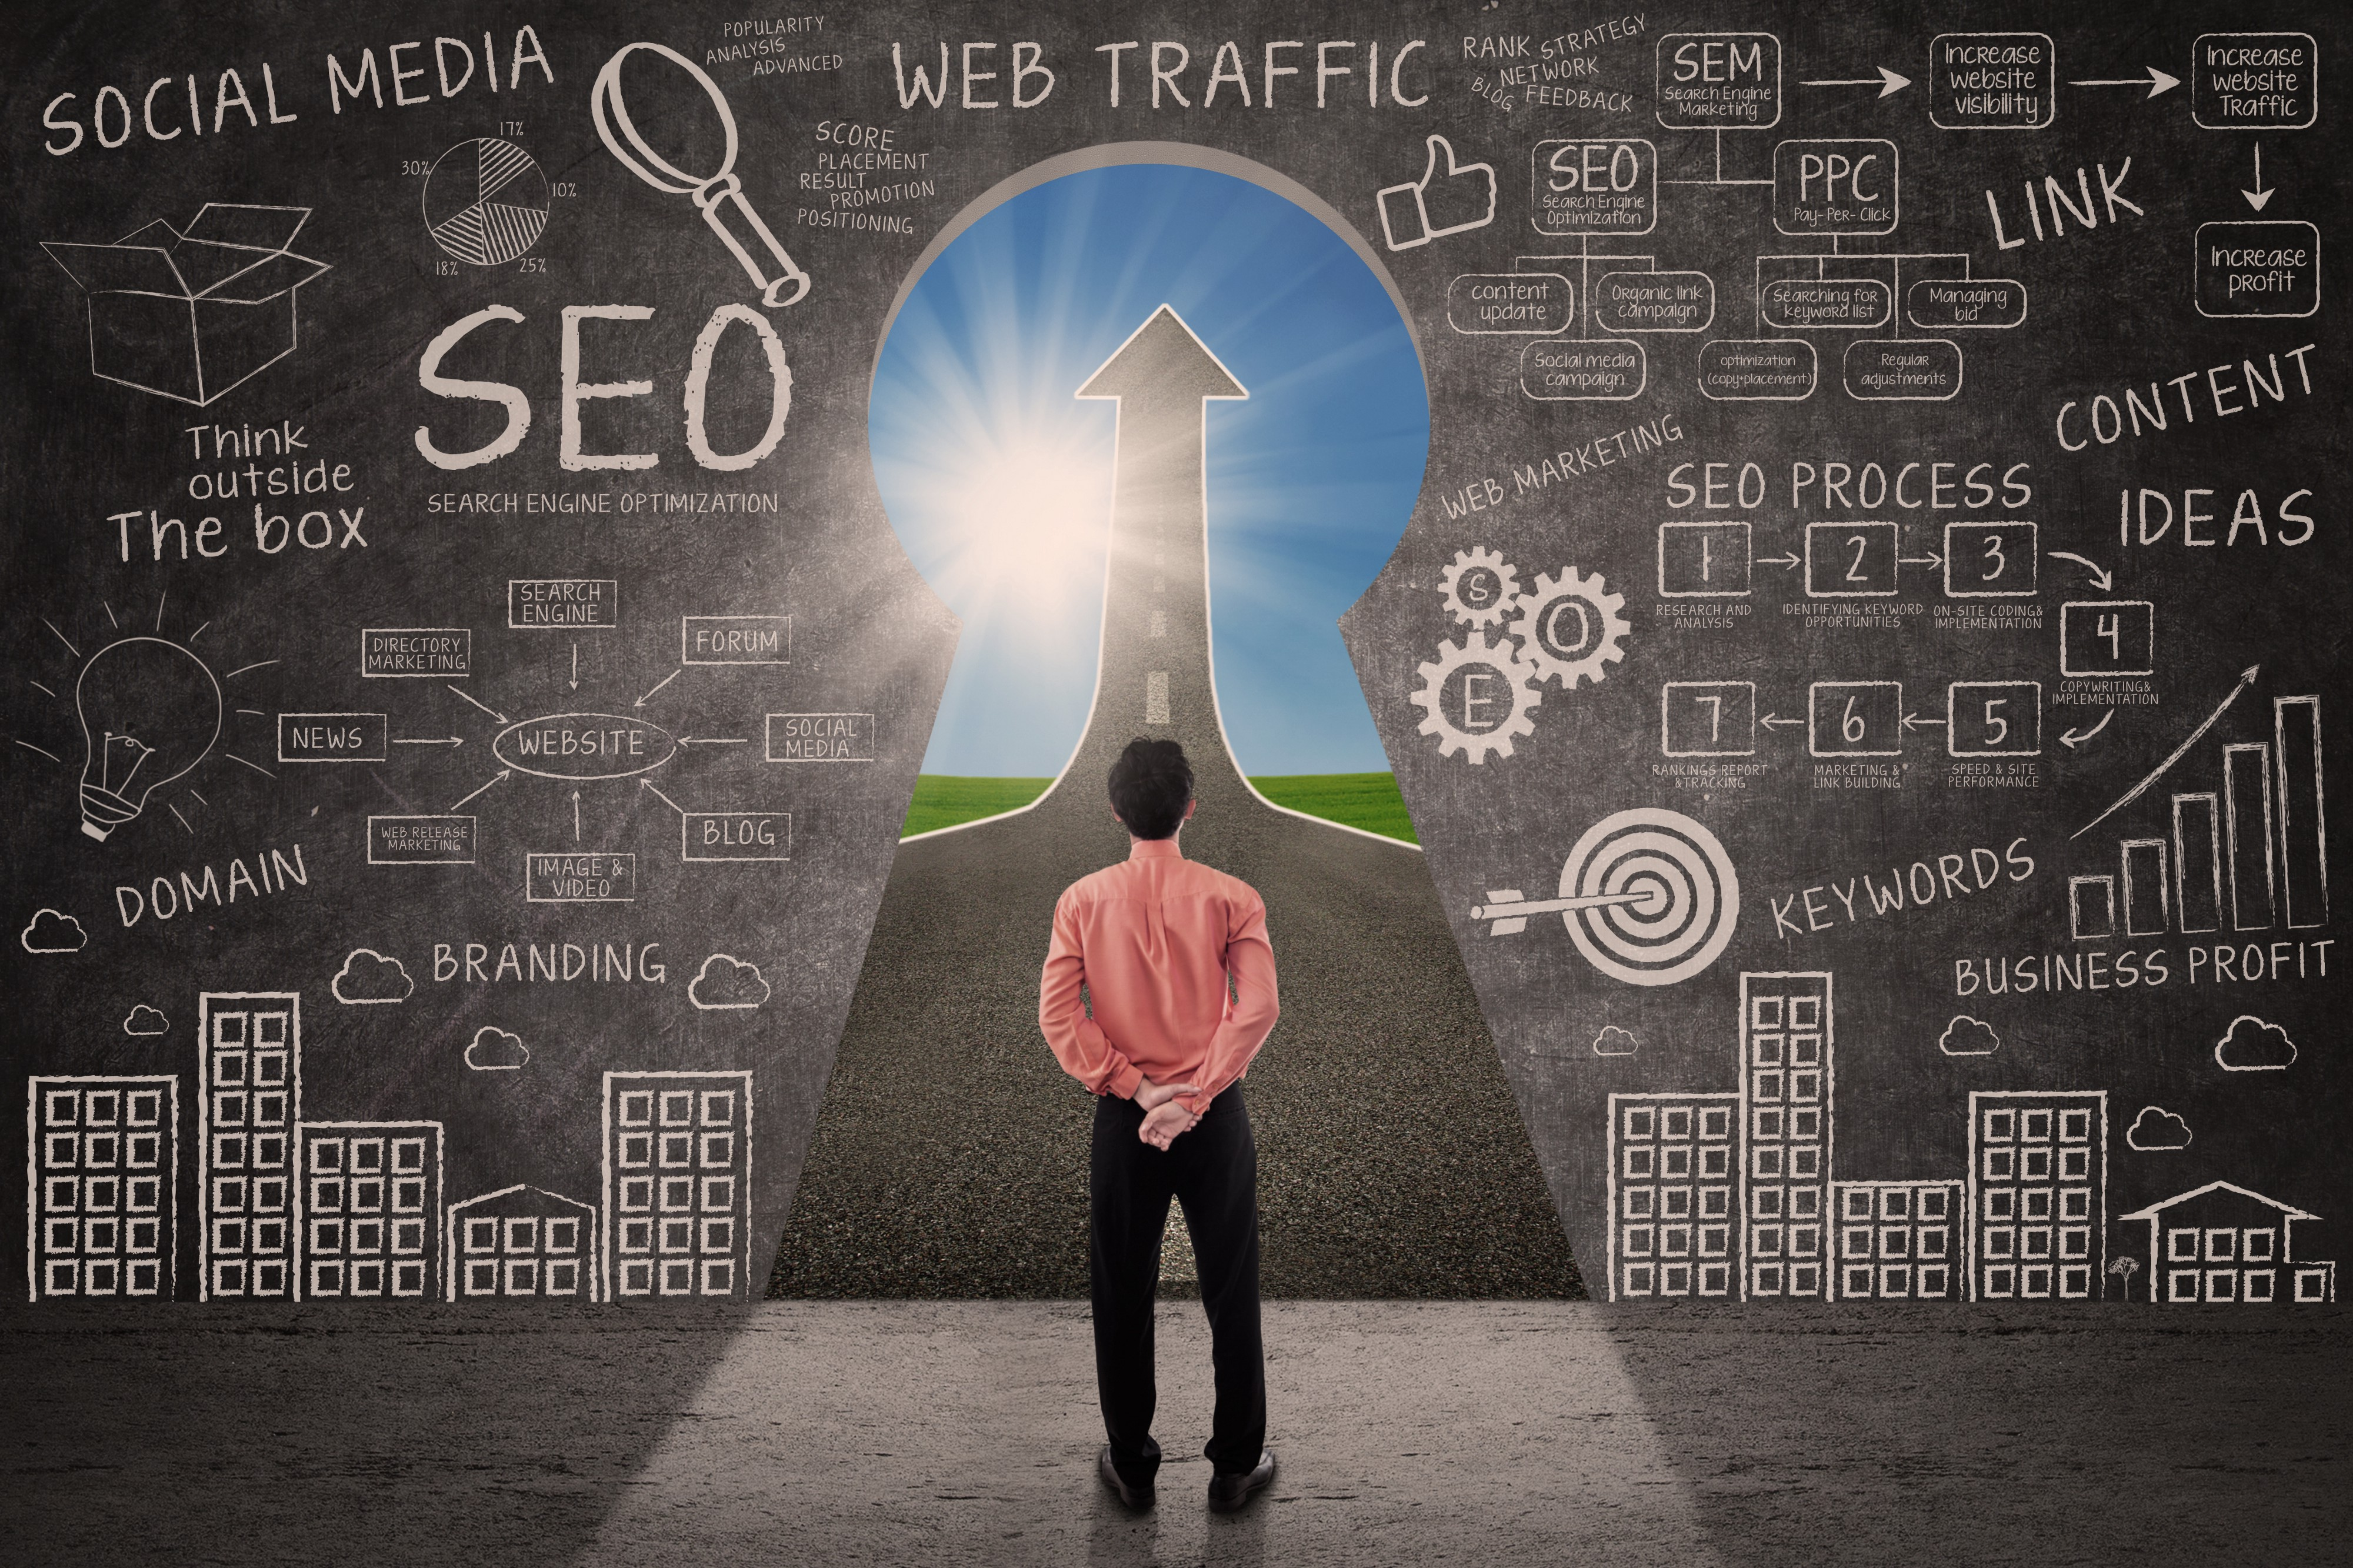 Search Engine Optimization and Web Site Placement